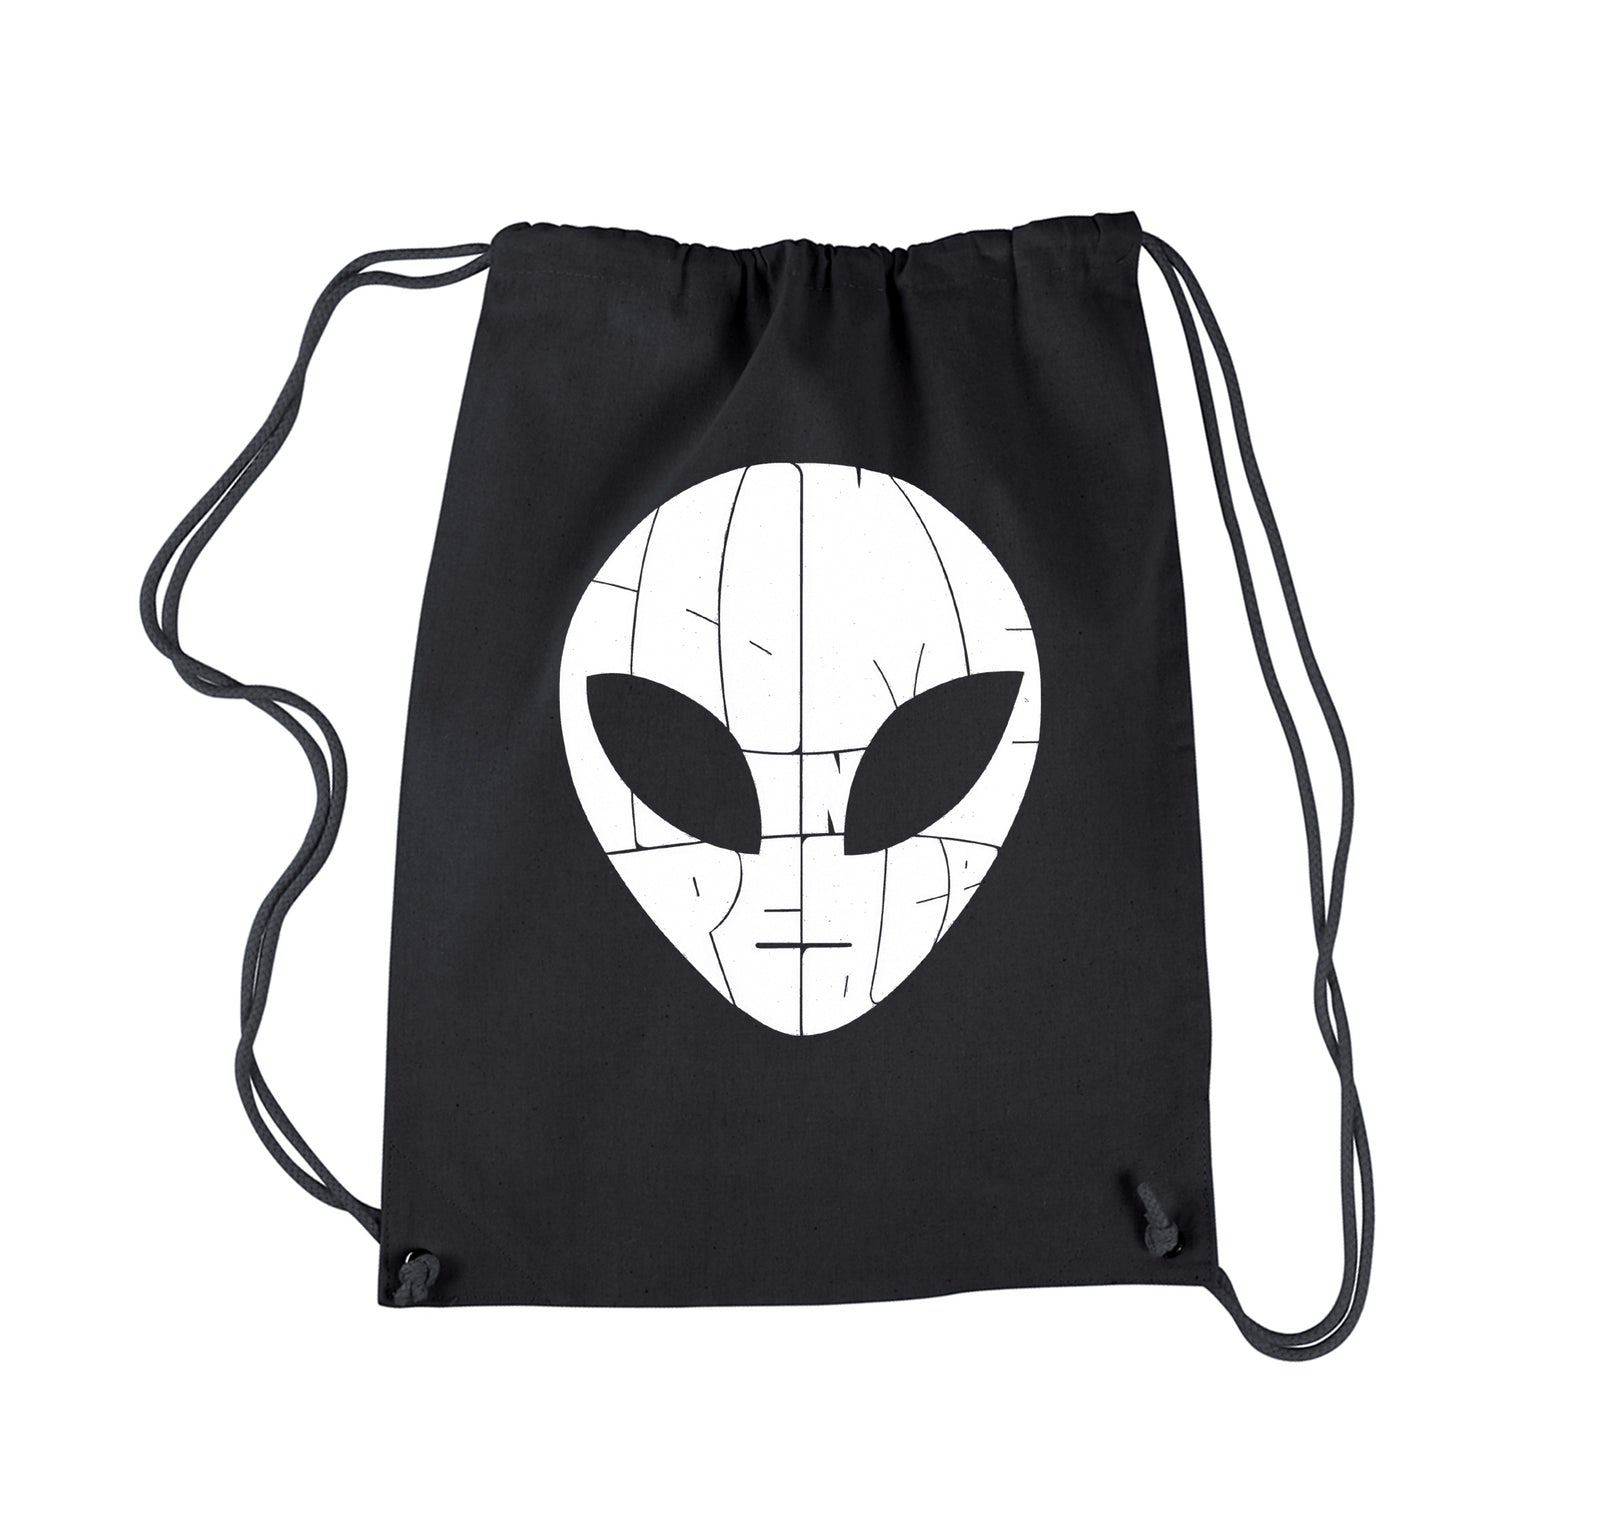 Drawstring Backpack - I COME IN PEACE